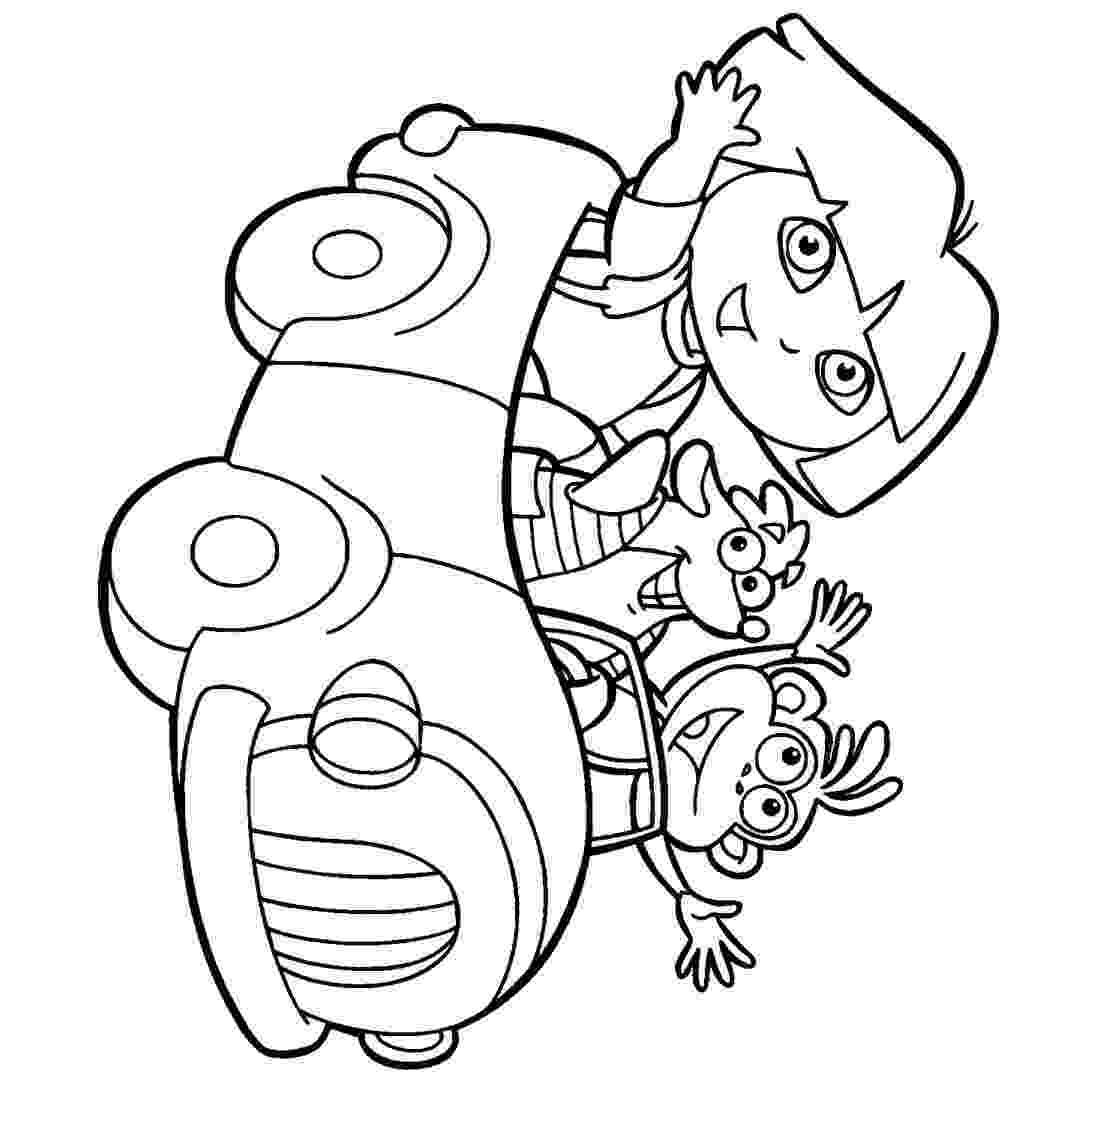 dora the explorer coloring pages free free printable dora the explorer coloring pages for kids dora the coloring explorer pages free